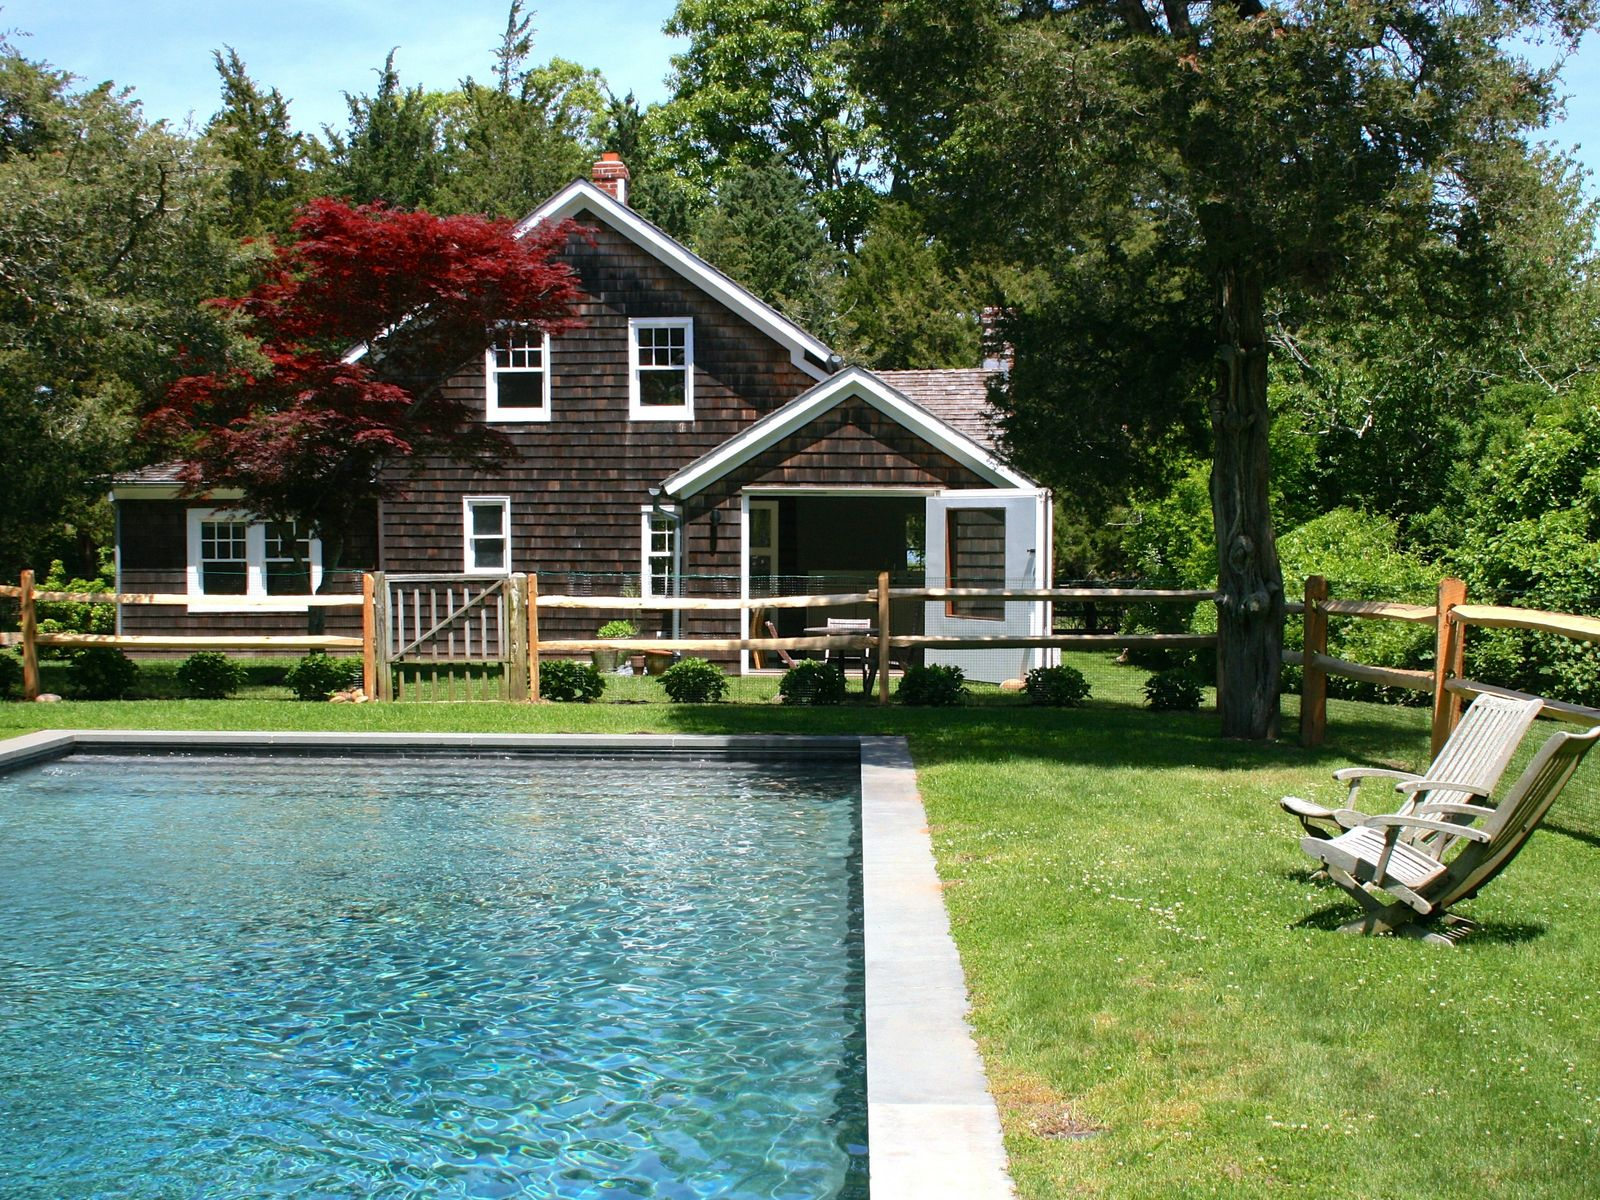 Old Stone Highway, East Hampton NY Single Family Home - Hamptons Real Estate